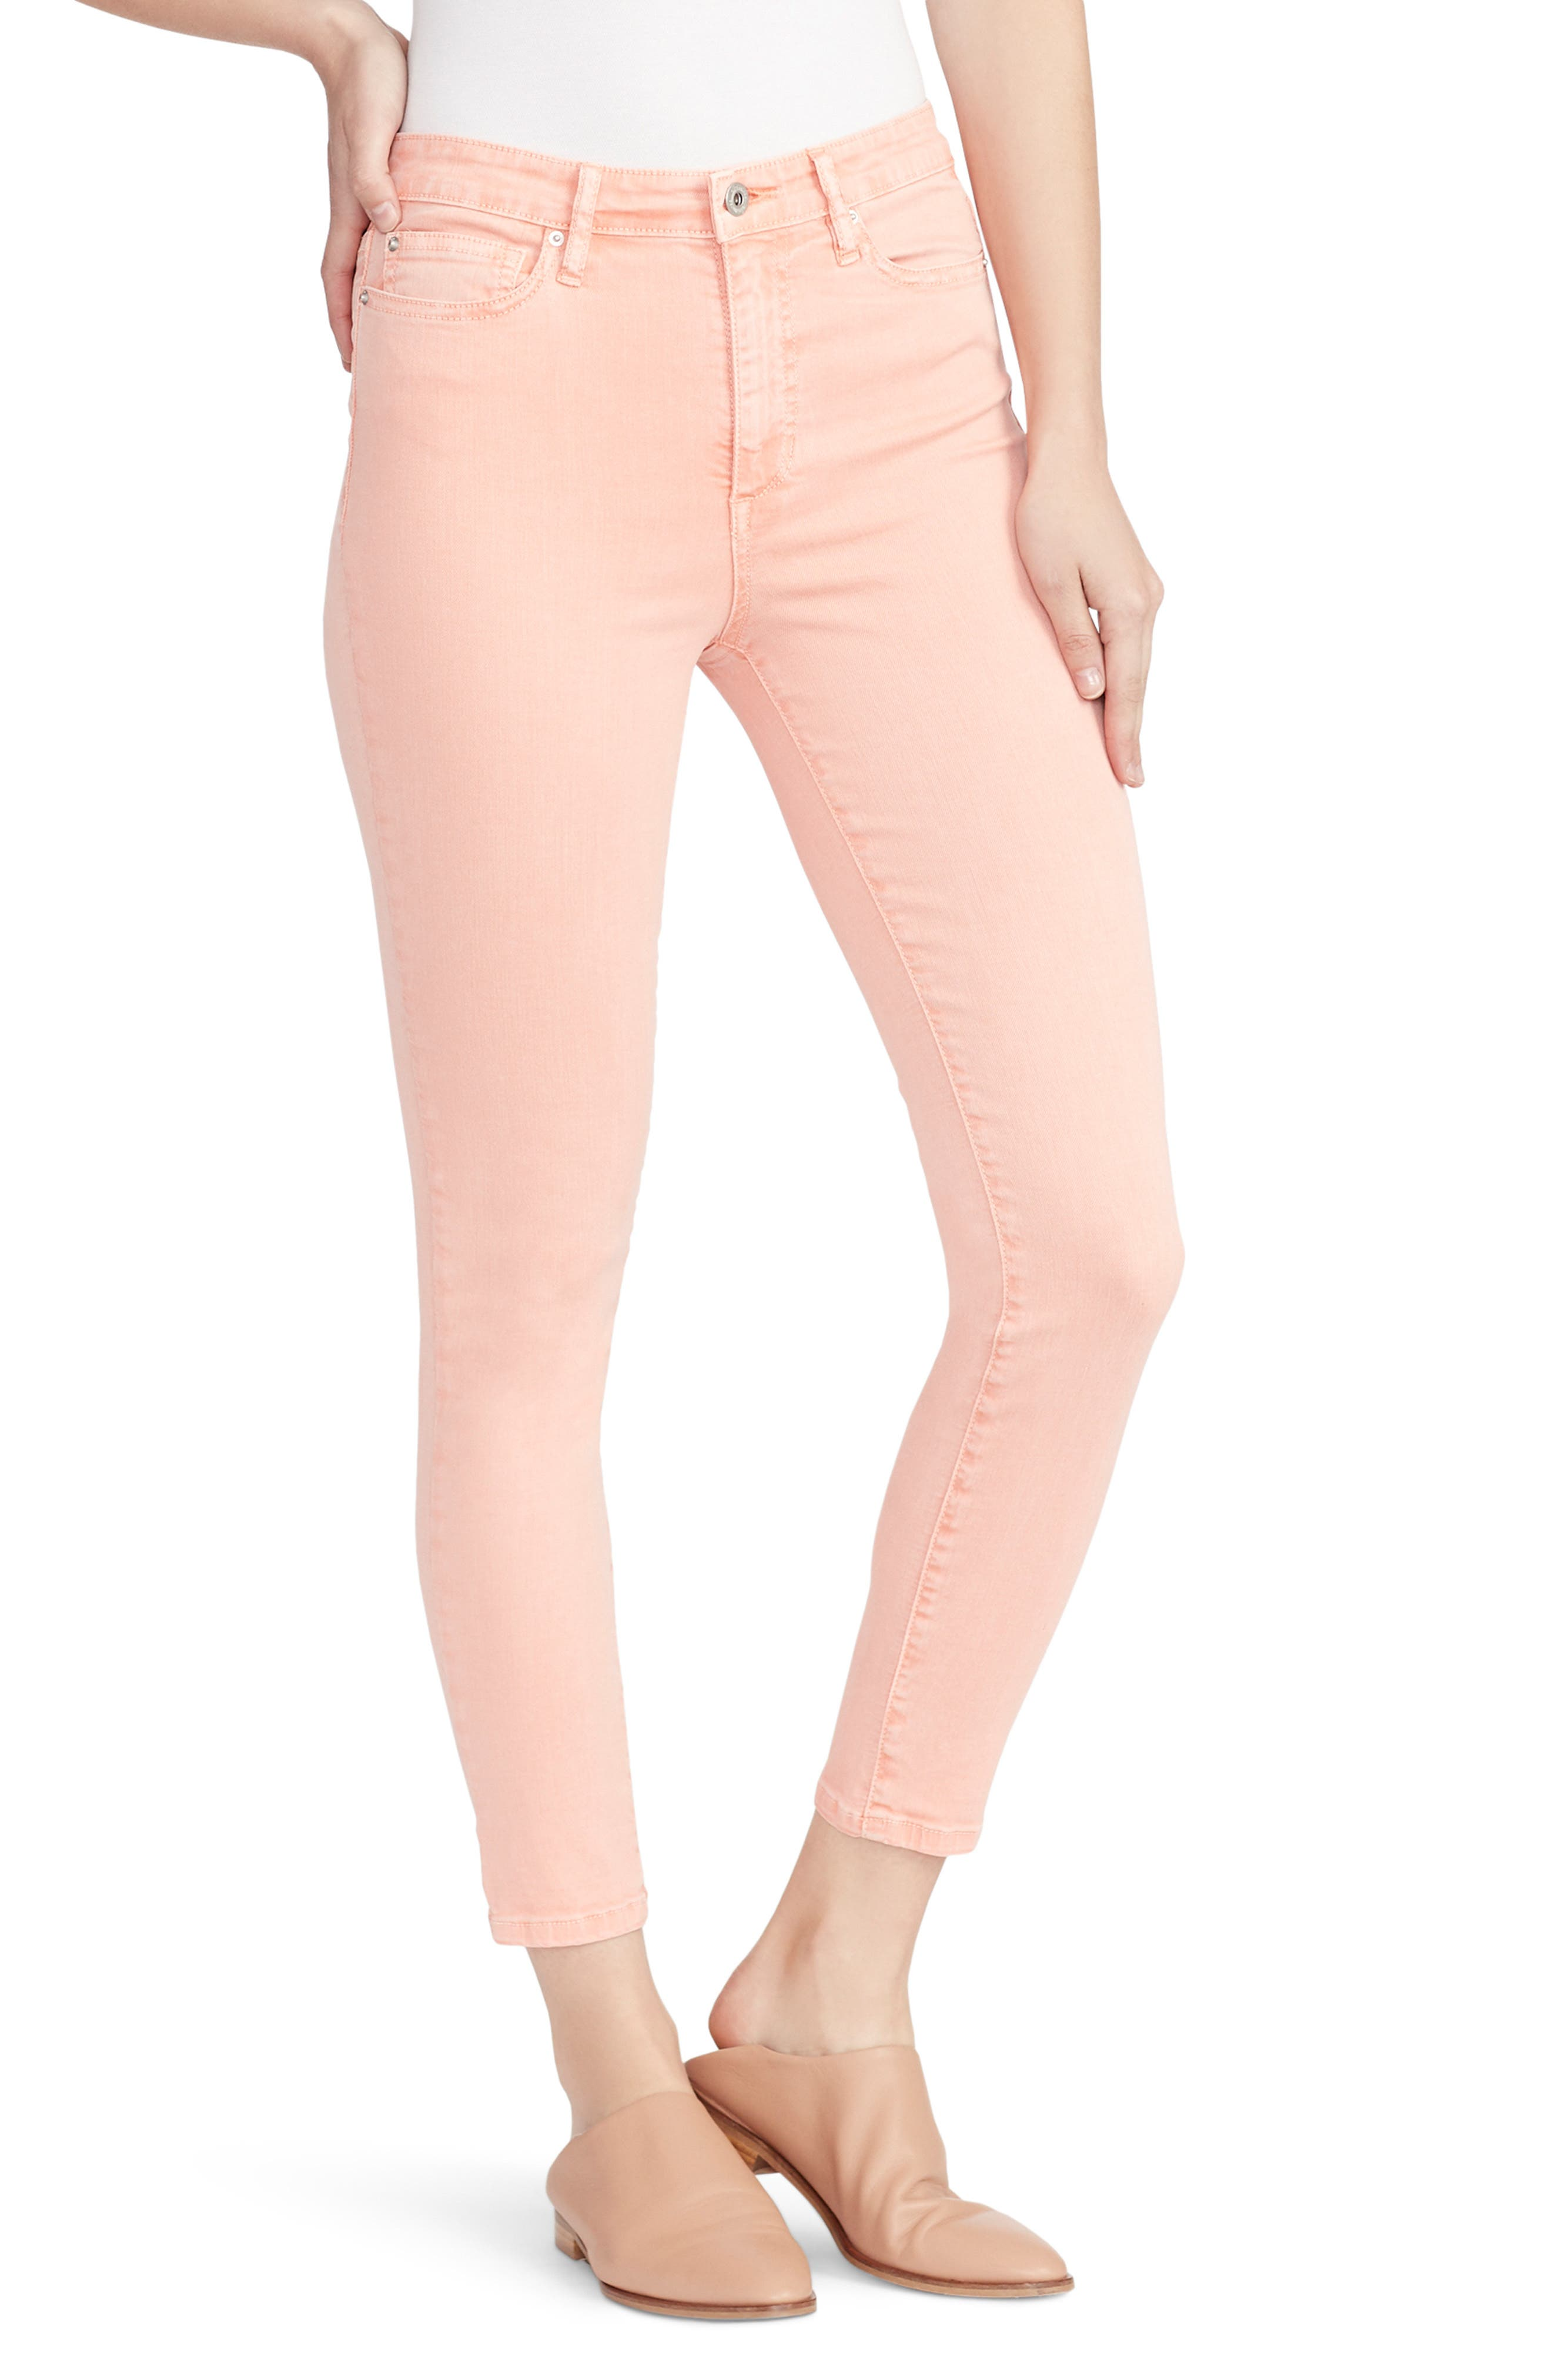 ELLA MOSS High Waist Ankle Skinny Jeans, Main, color, PEACH BUD